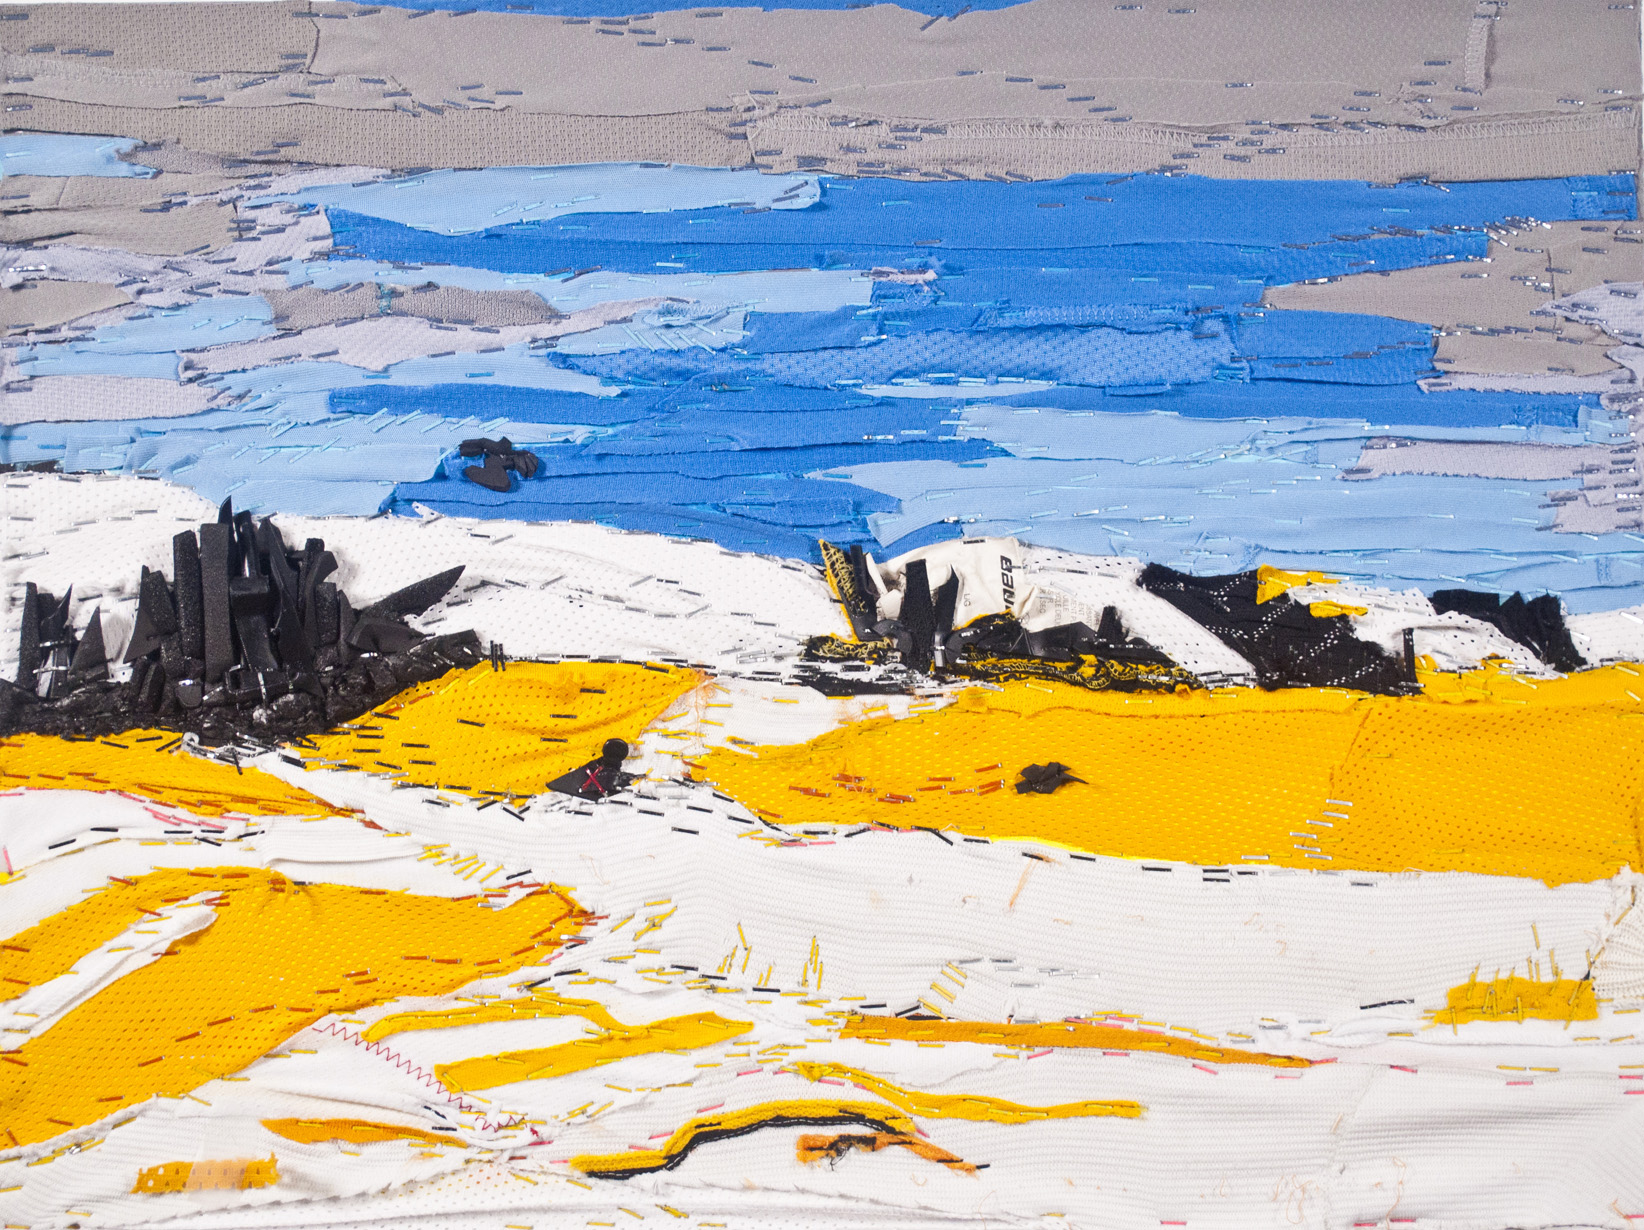 This is a collaged landscape made up of recycled hockey equipment (such as jersey frabric and pad foam) depicting a blue and grey sky with white covered mountains framing black tree trunks and a field of snow with reflections of golden sun rays.